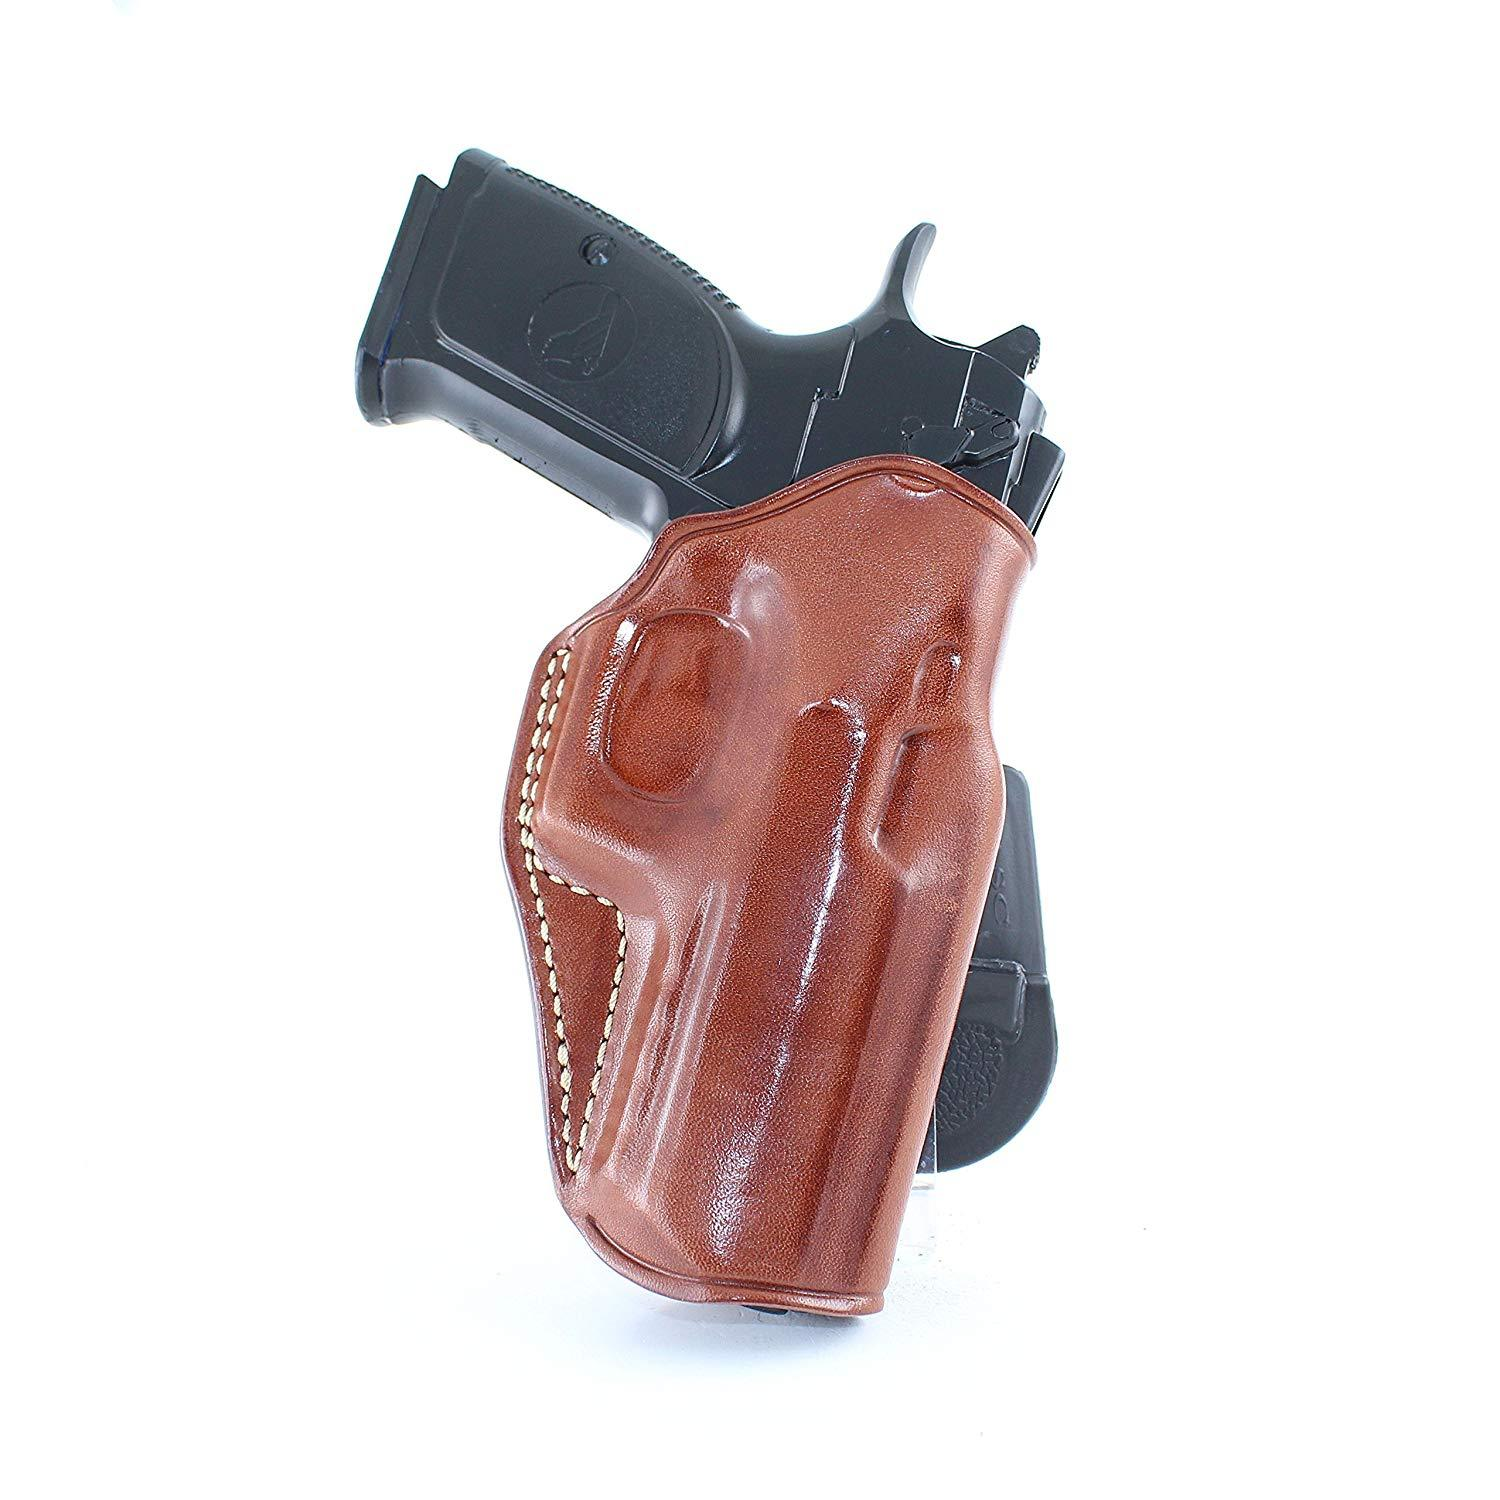 63f51224 ... Baby Desert Eagle 40 Review: LEATHER PADDLE OWB HOLSTER FOR BABY DESERT  EAGLE III.